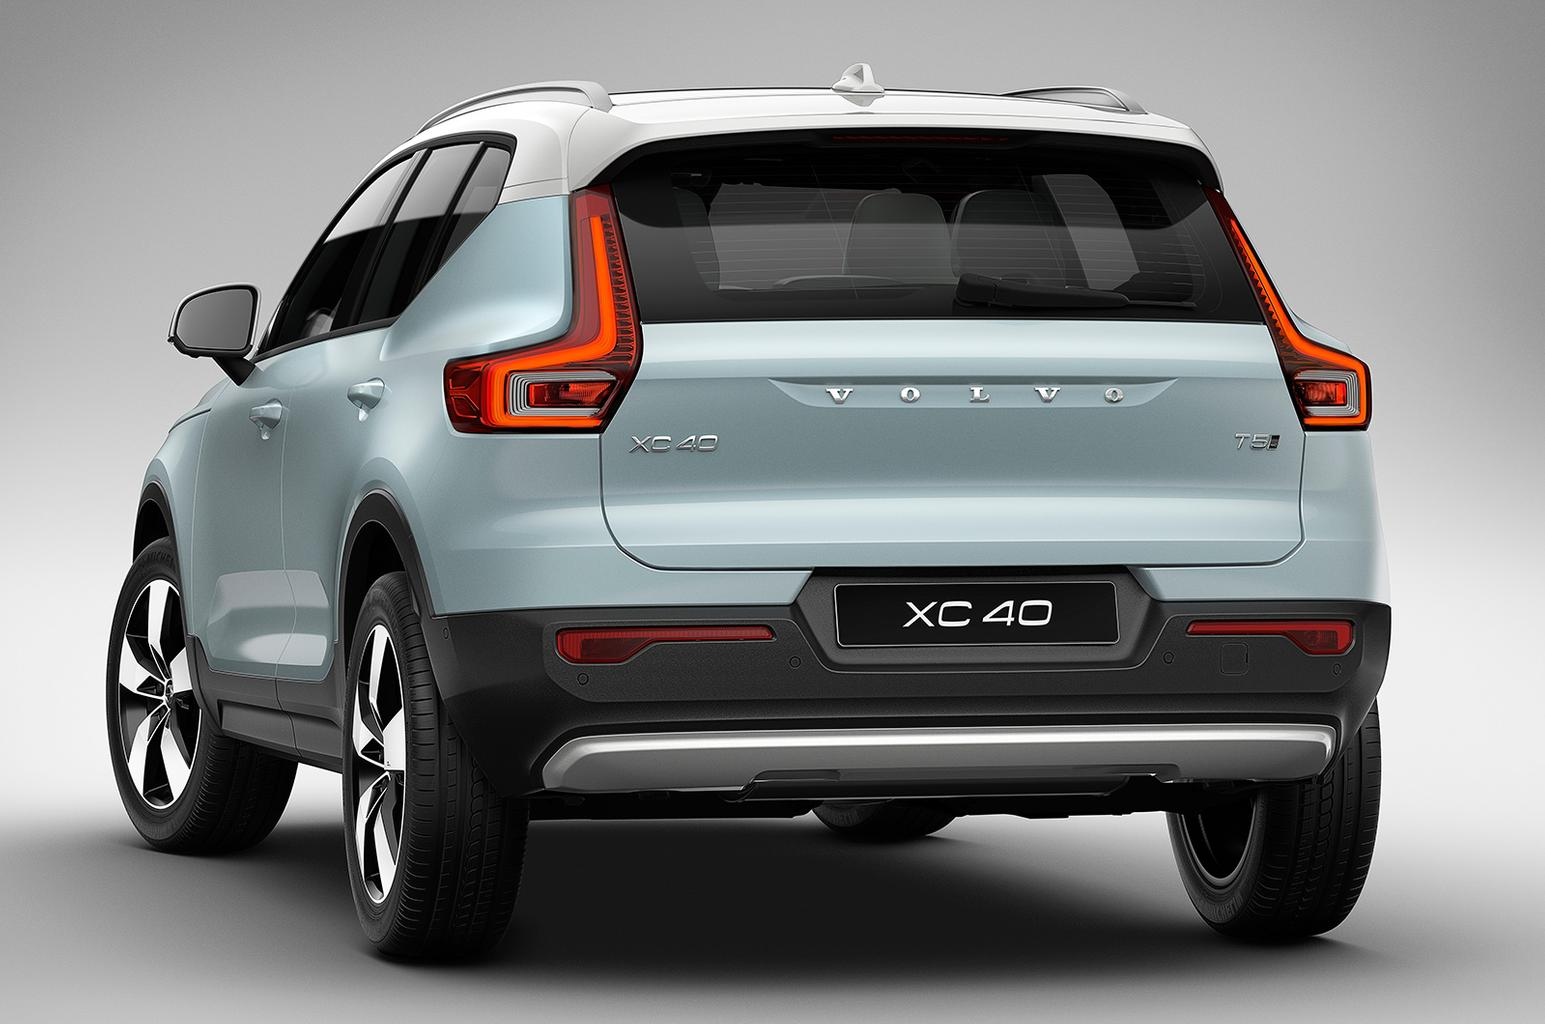 New Volvo XC40 revealed – price, specs and release date